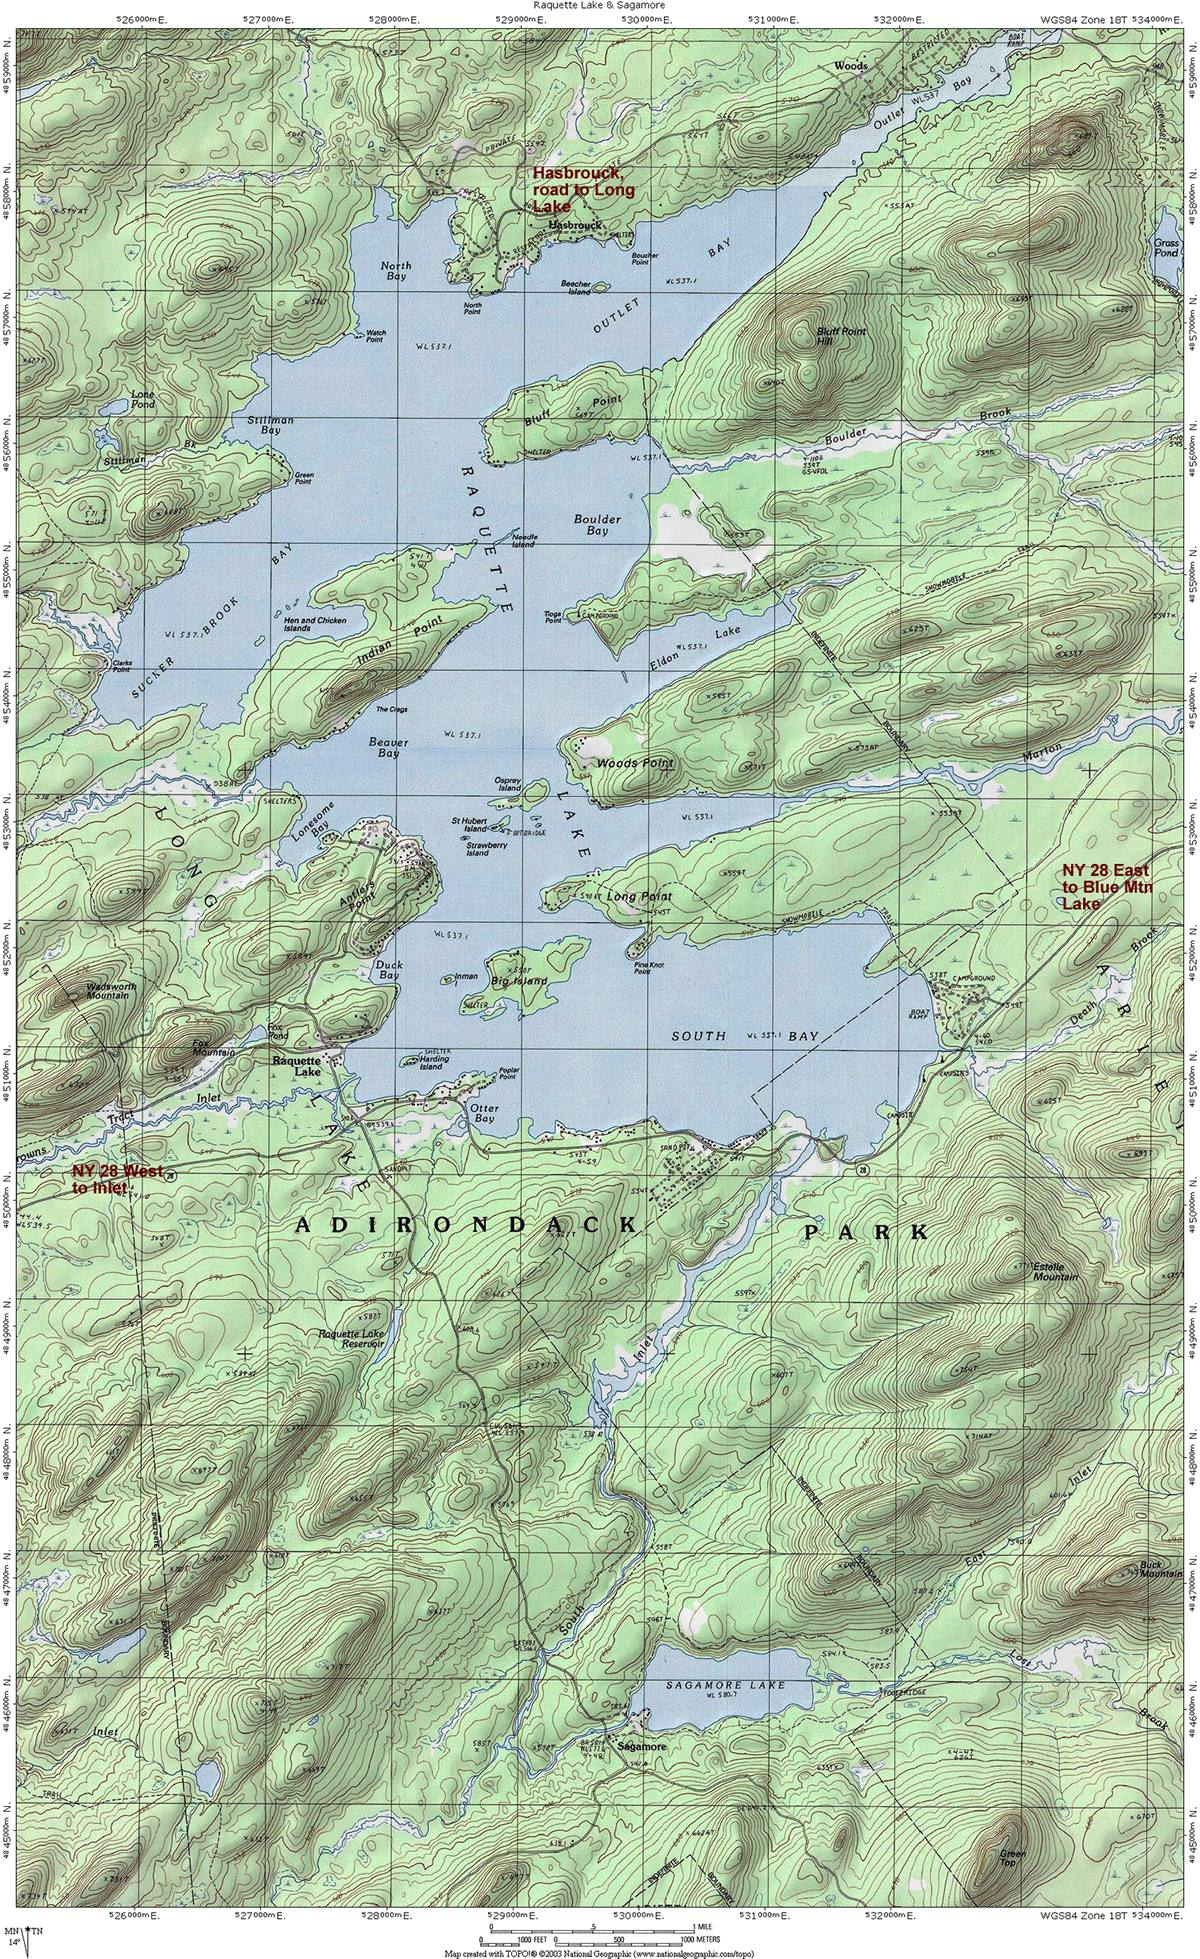 Raquette Lake, Great Camp Sagamore & Hasbrouck Topographic Map